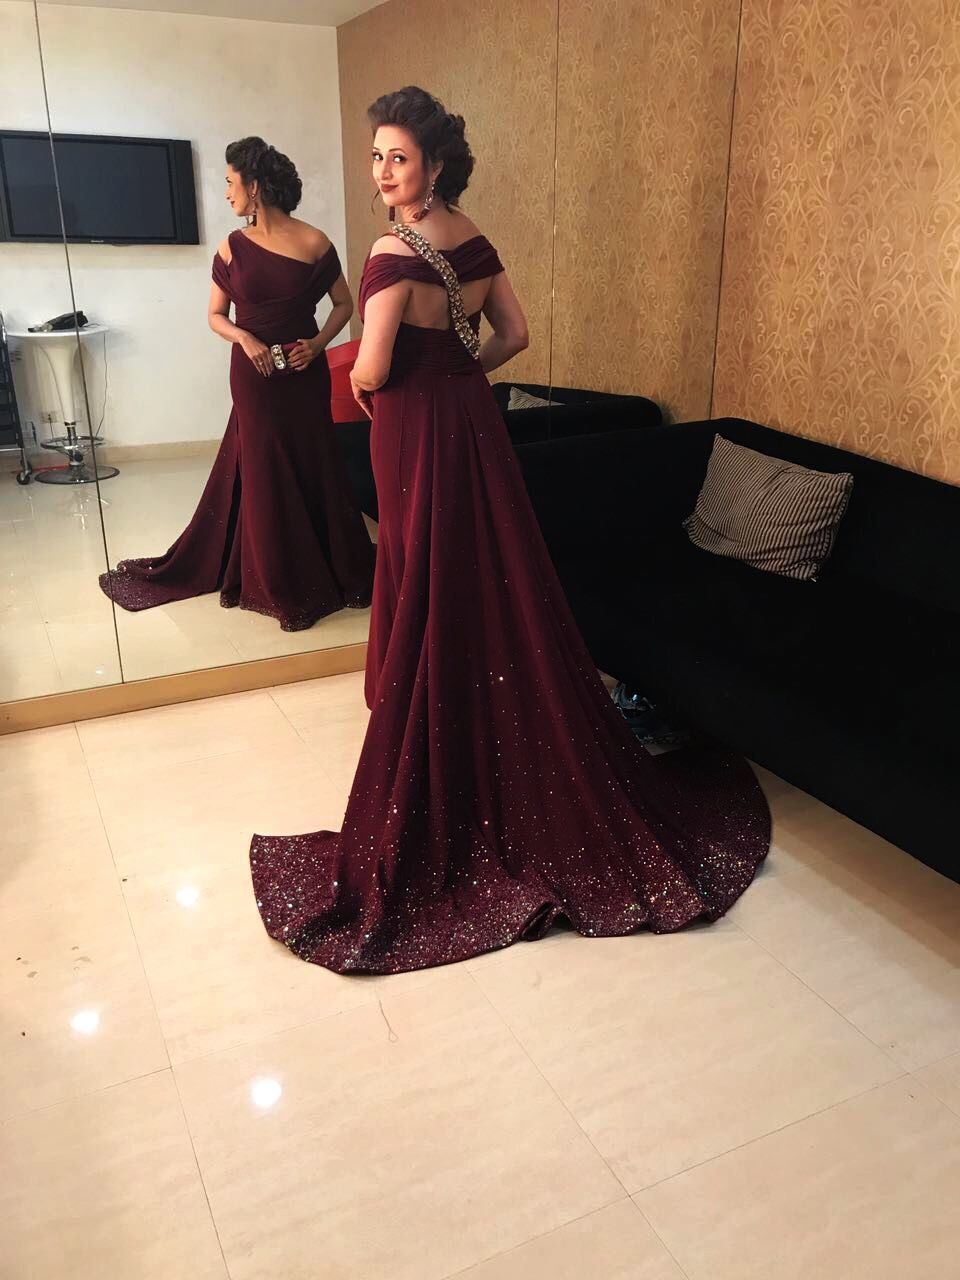 808f67e1c52ac Beautiful back. Red carpet evening gown in wine colour | Evening ...